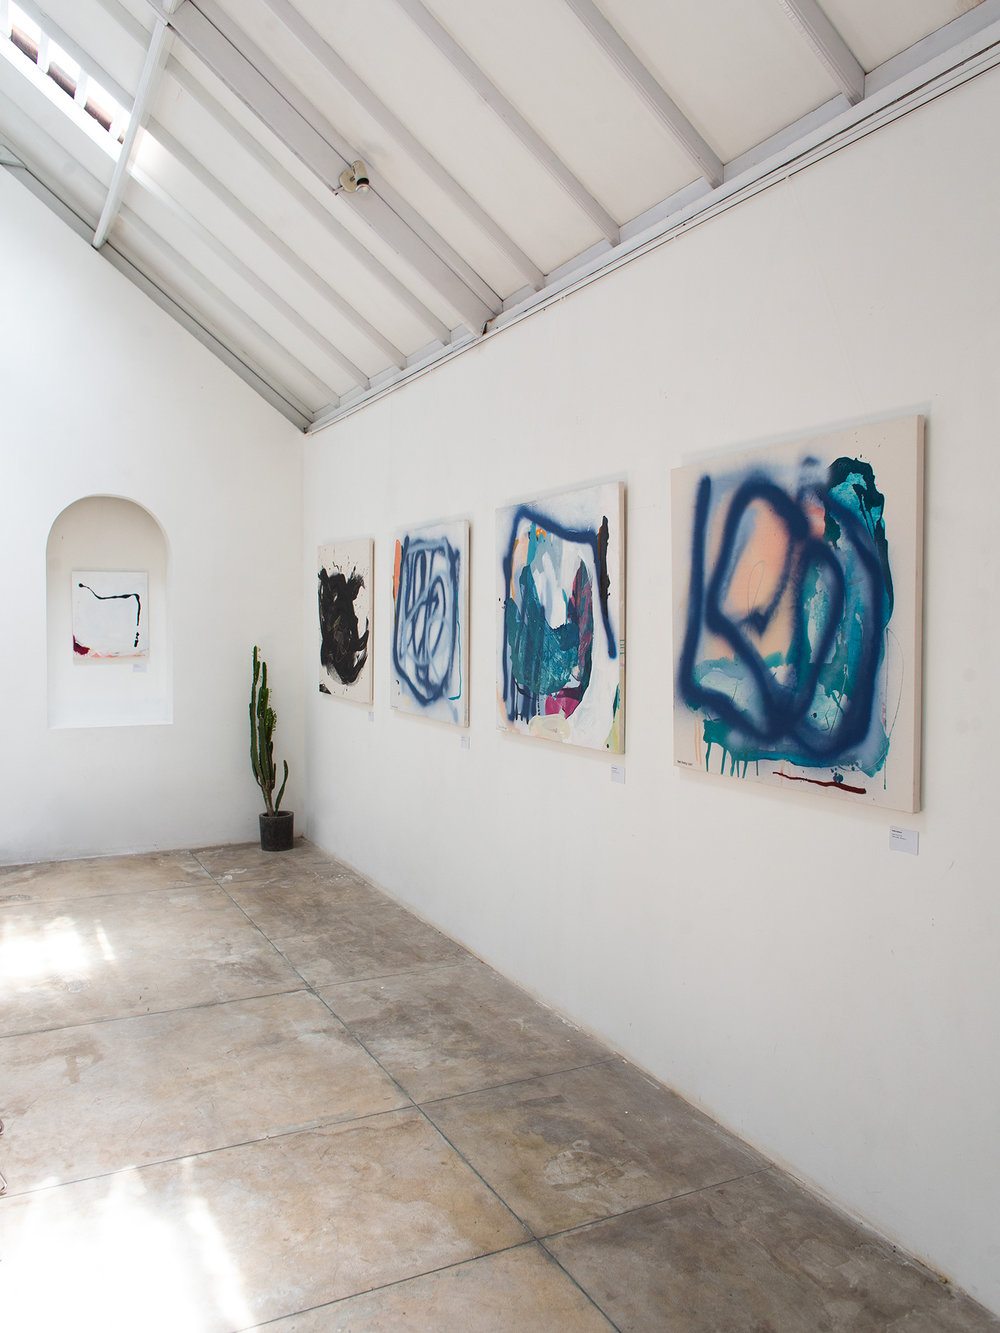 Abstract paintings by Ordo Amoris during exhibition called wu-wei in Ubud, Bali